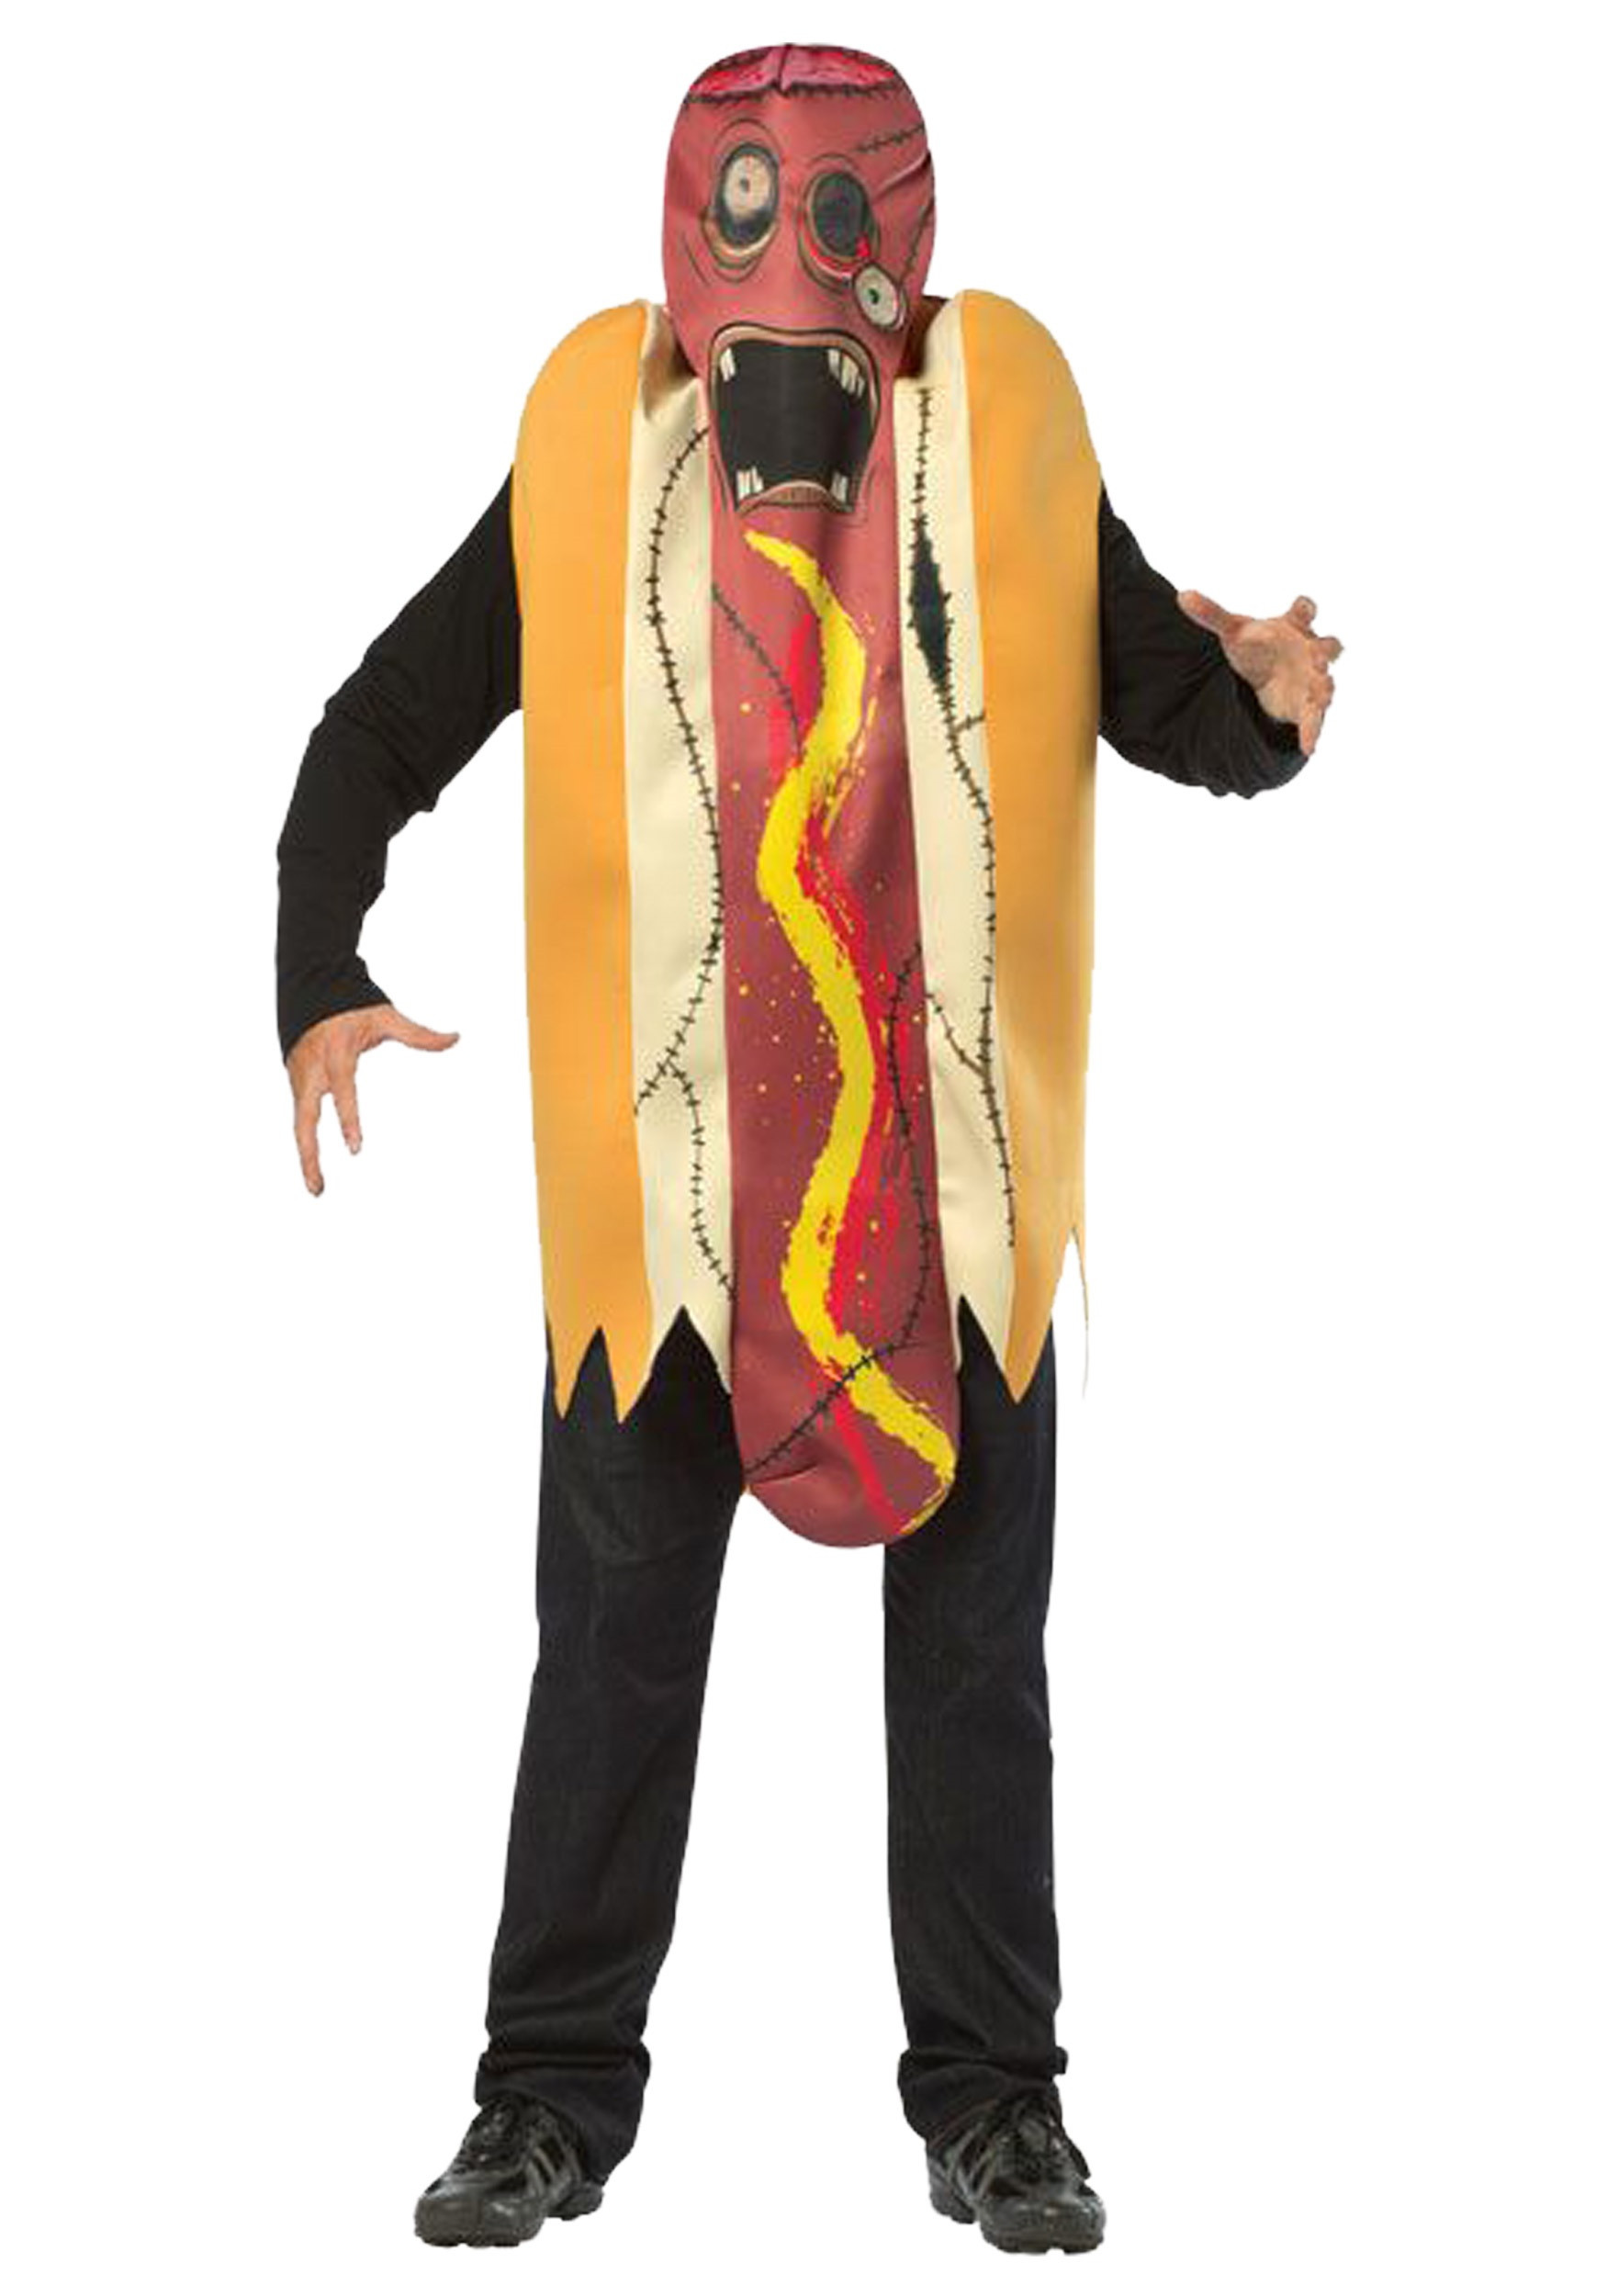 Hot Dog Halloween Costumes For Dogs  Adult Zombie Hot Dog Costume